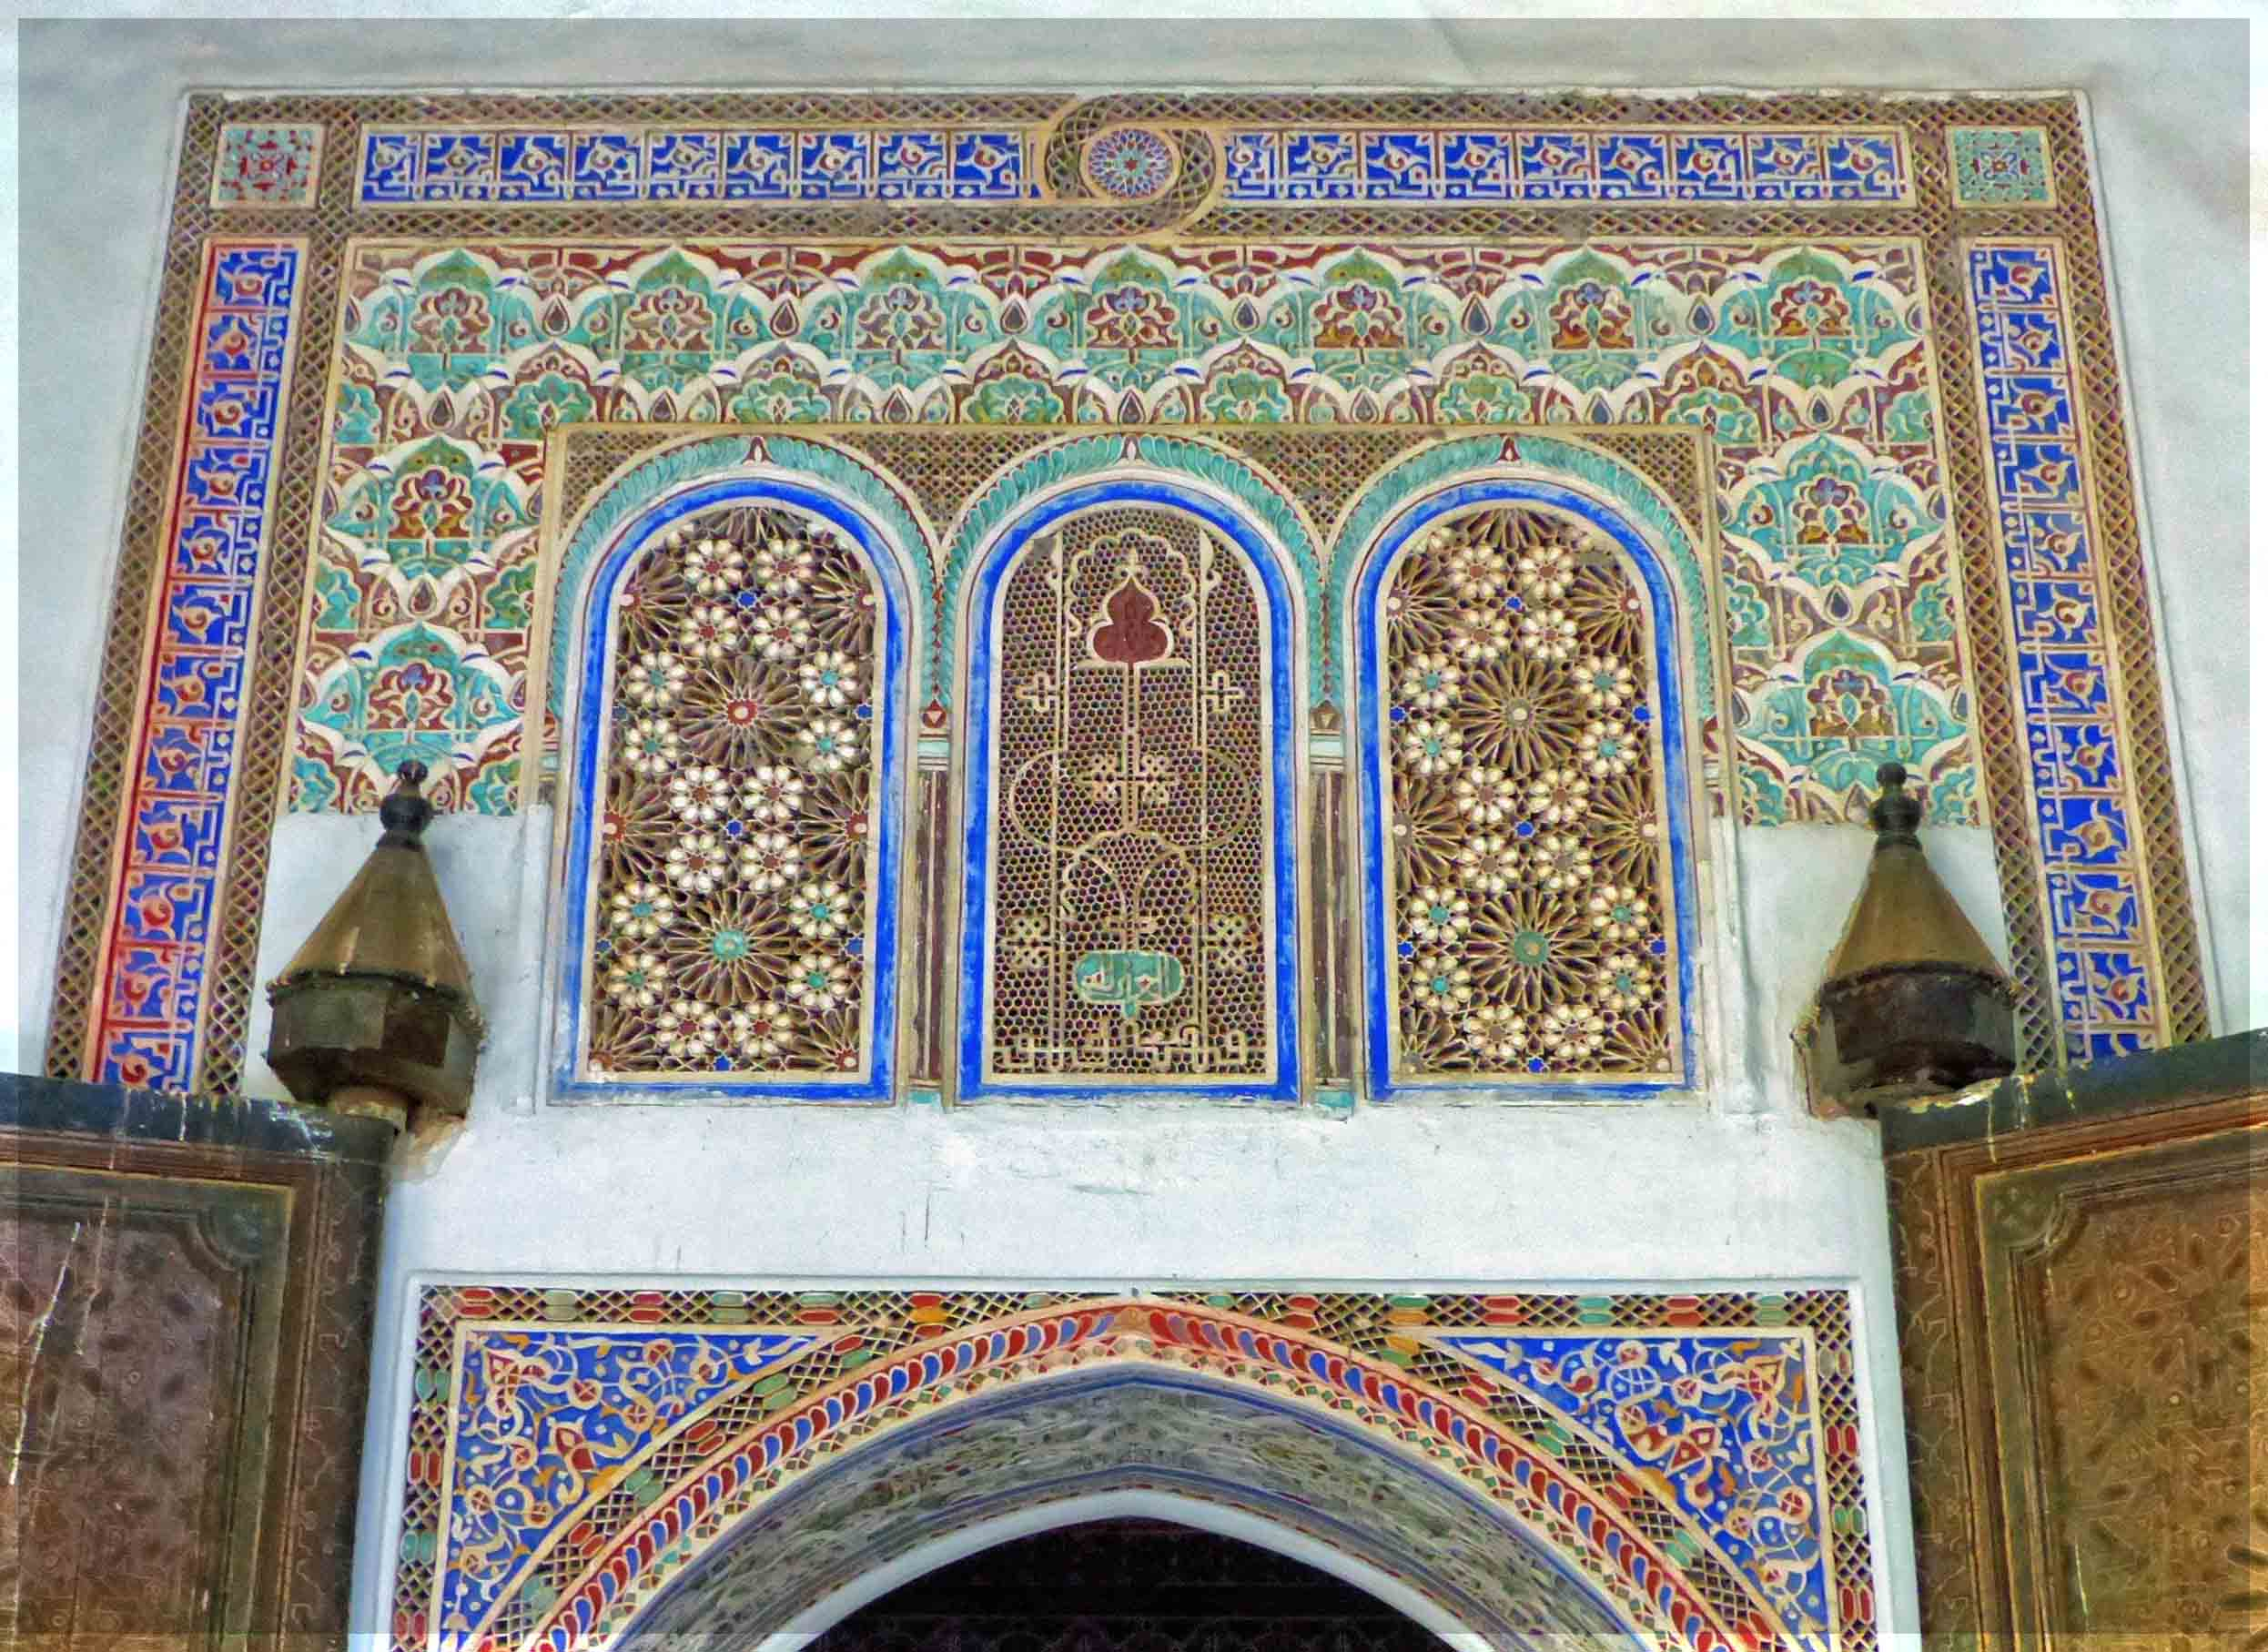 Decorative tiles in blue and green above an arched door